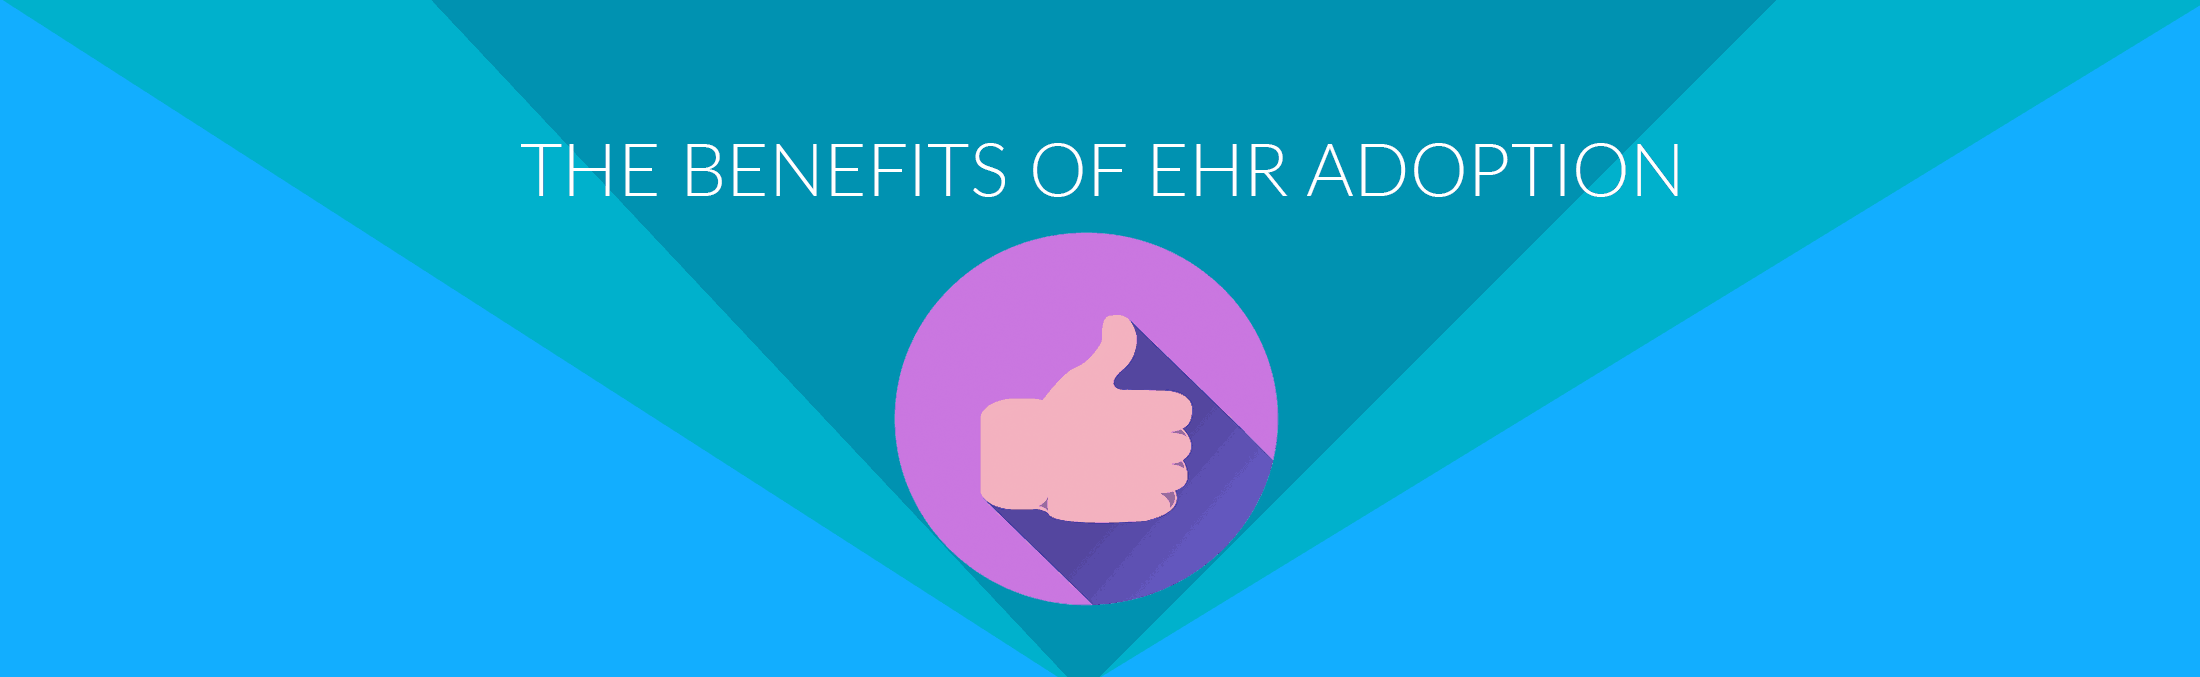 benefits of ehr adoption